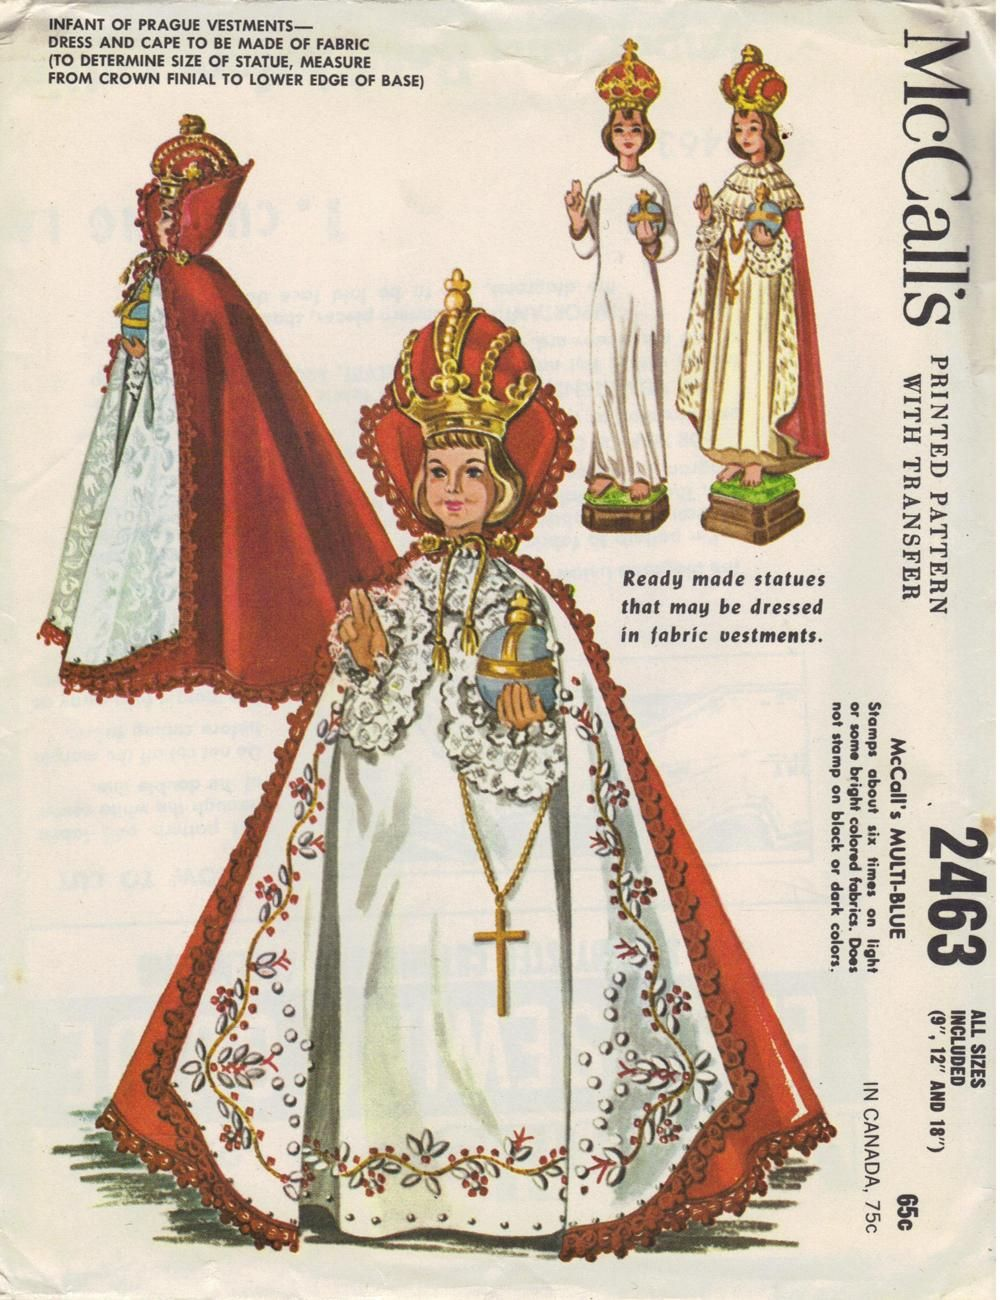 Mccalls 2463 vintage sewing patterns sewing patterns and patterns mccalls 2463 vintage sewing patterns in case you need to cosplay as a pope jeuxipadfo Images